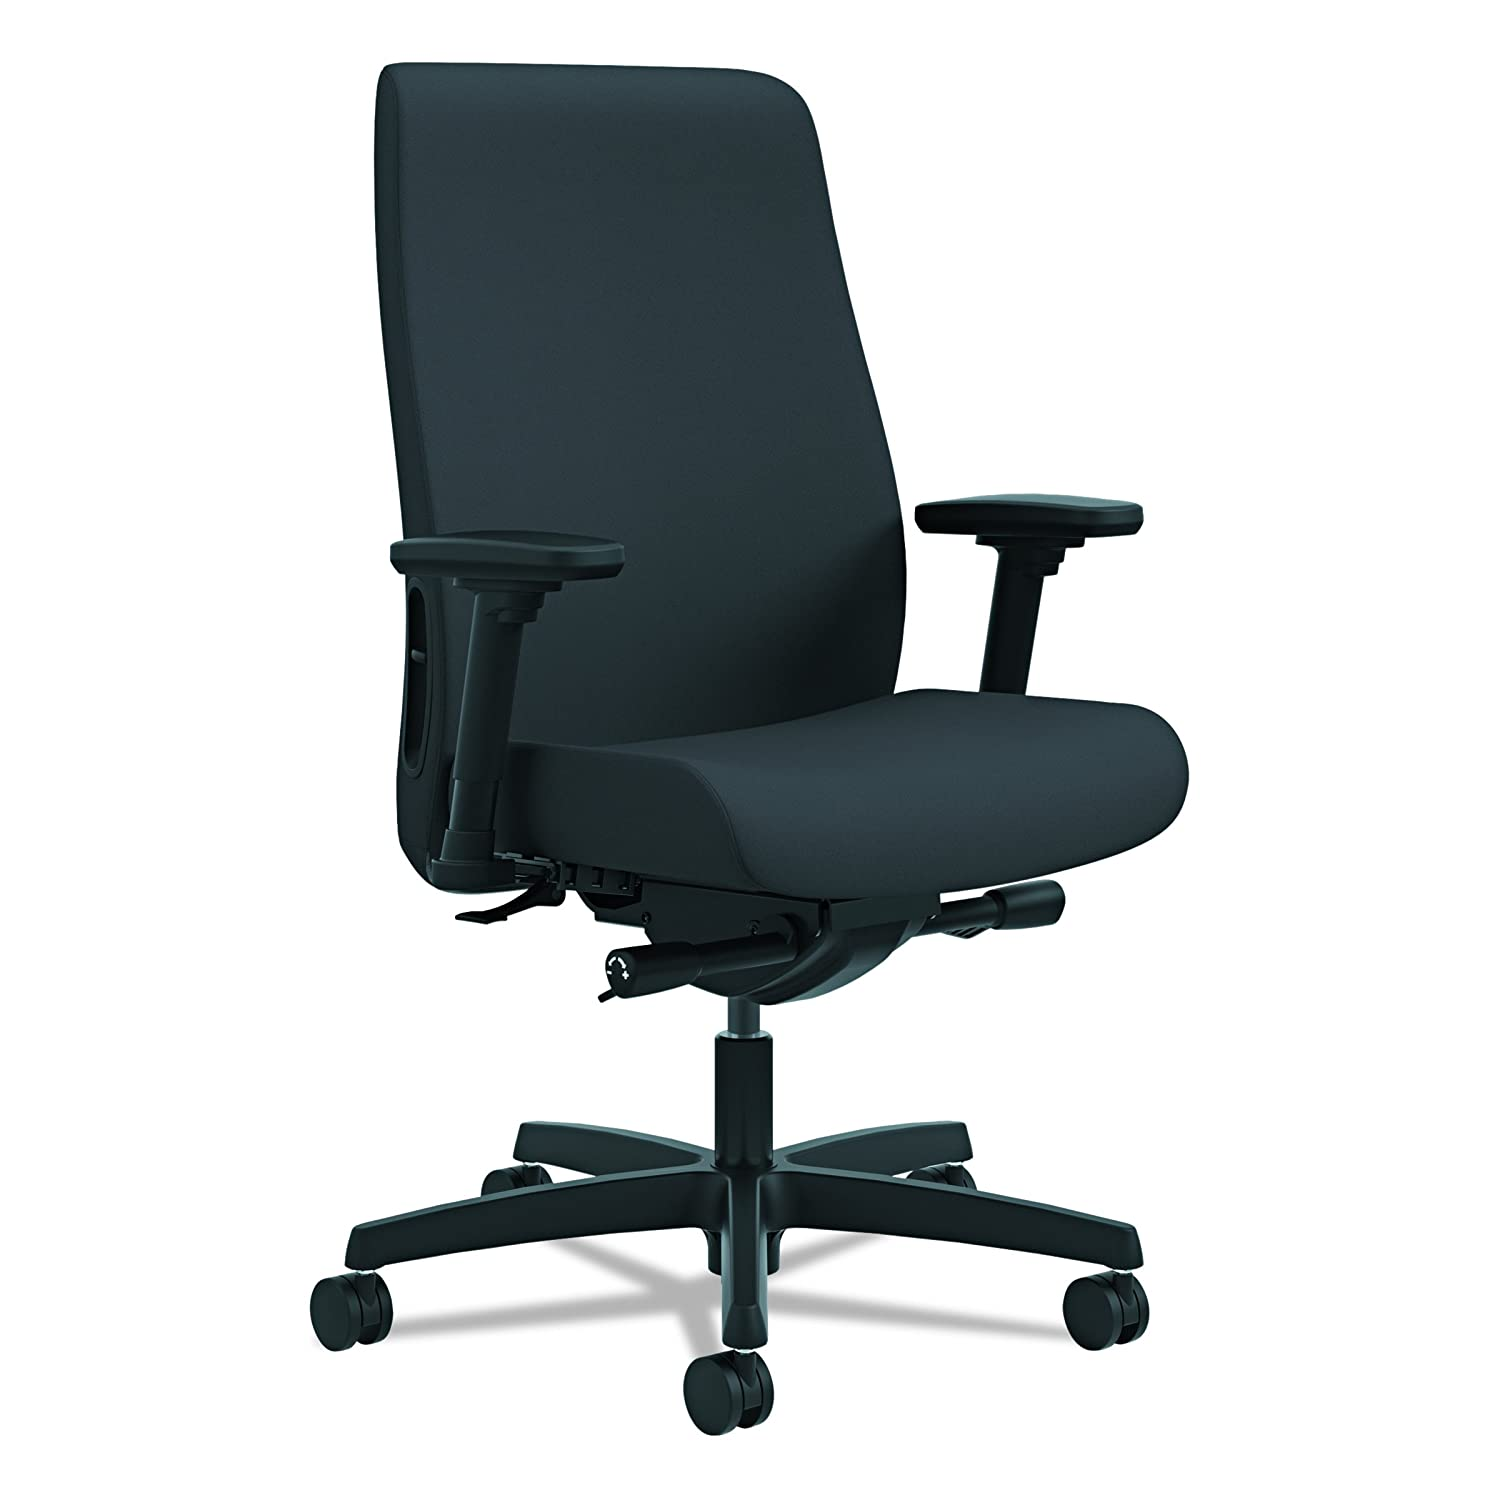 Amazon.com: HON Endorse Mid-Back Task Chair- Upholstered Computer Chair for  Office Desk, Black (HLWU): Kitchen & Dining